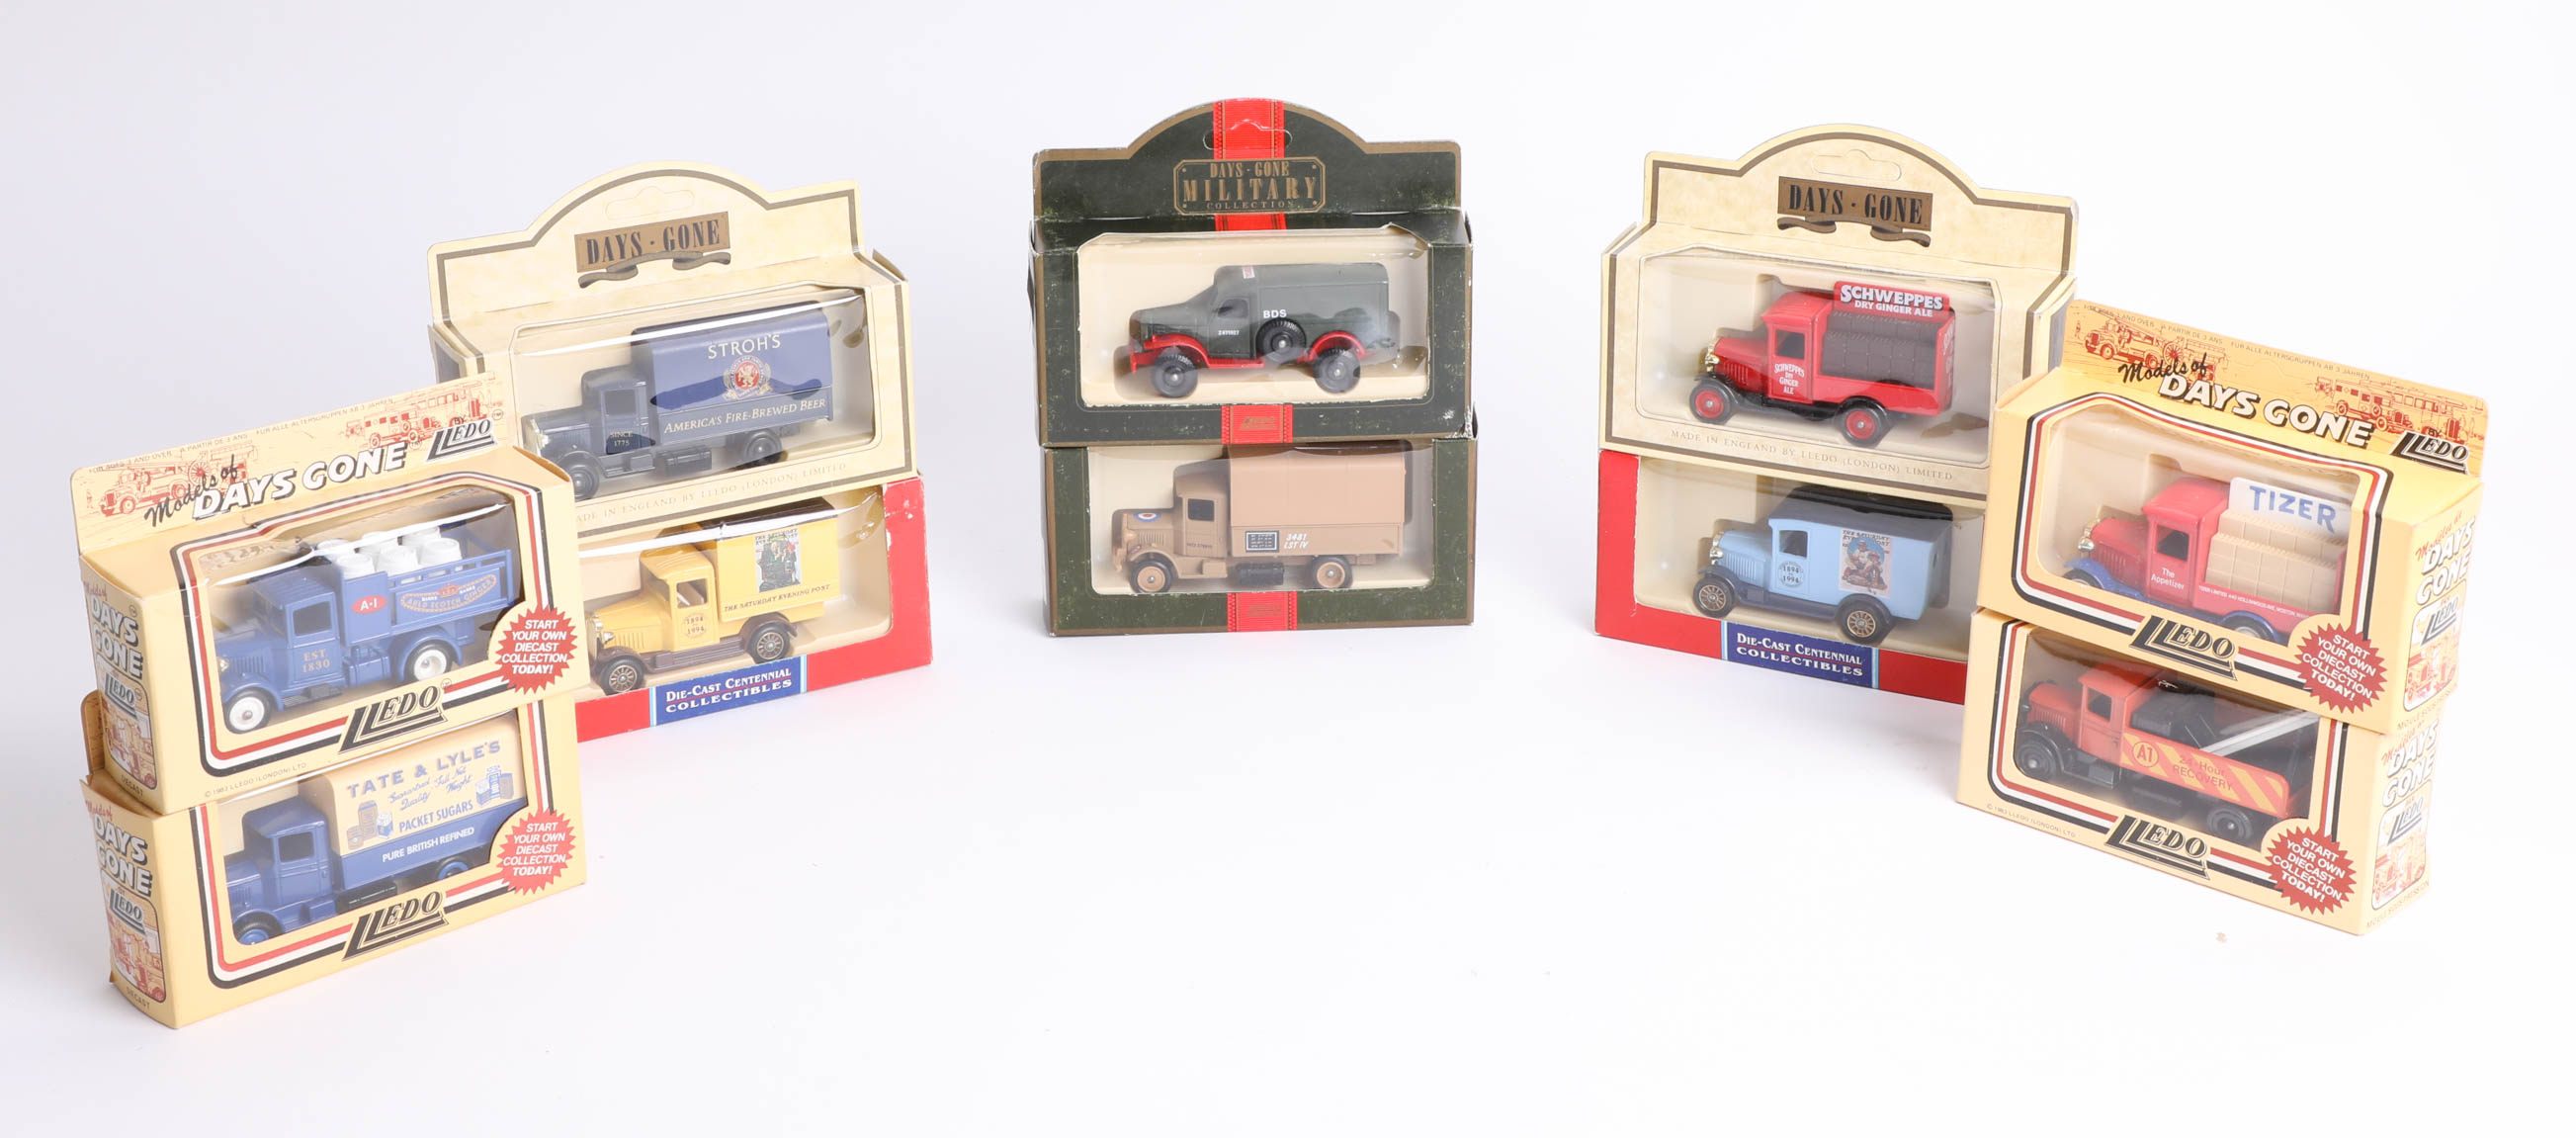 Sixty-one 'Days Gone' diecast cars and two 'Normal Rockwell's 100th Anniversary' diecast cars. (63)